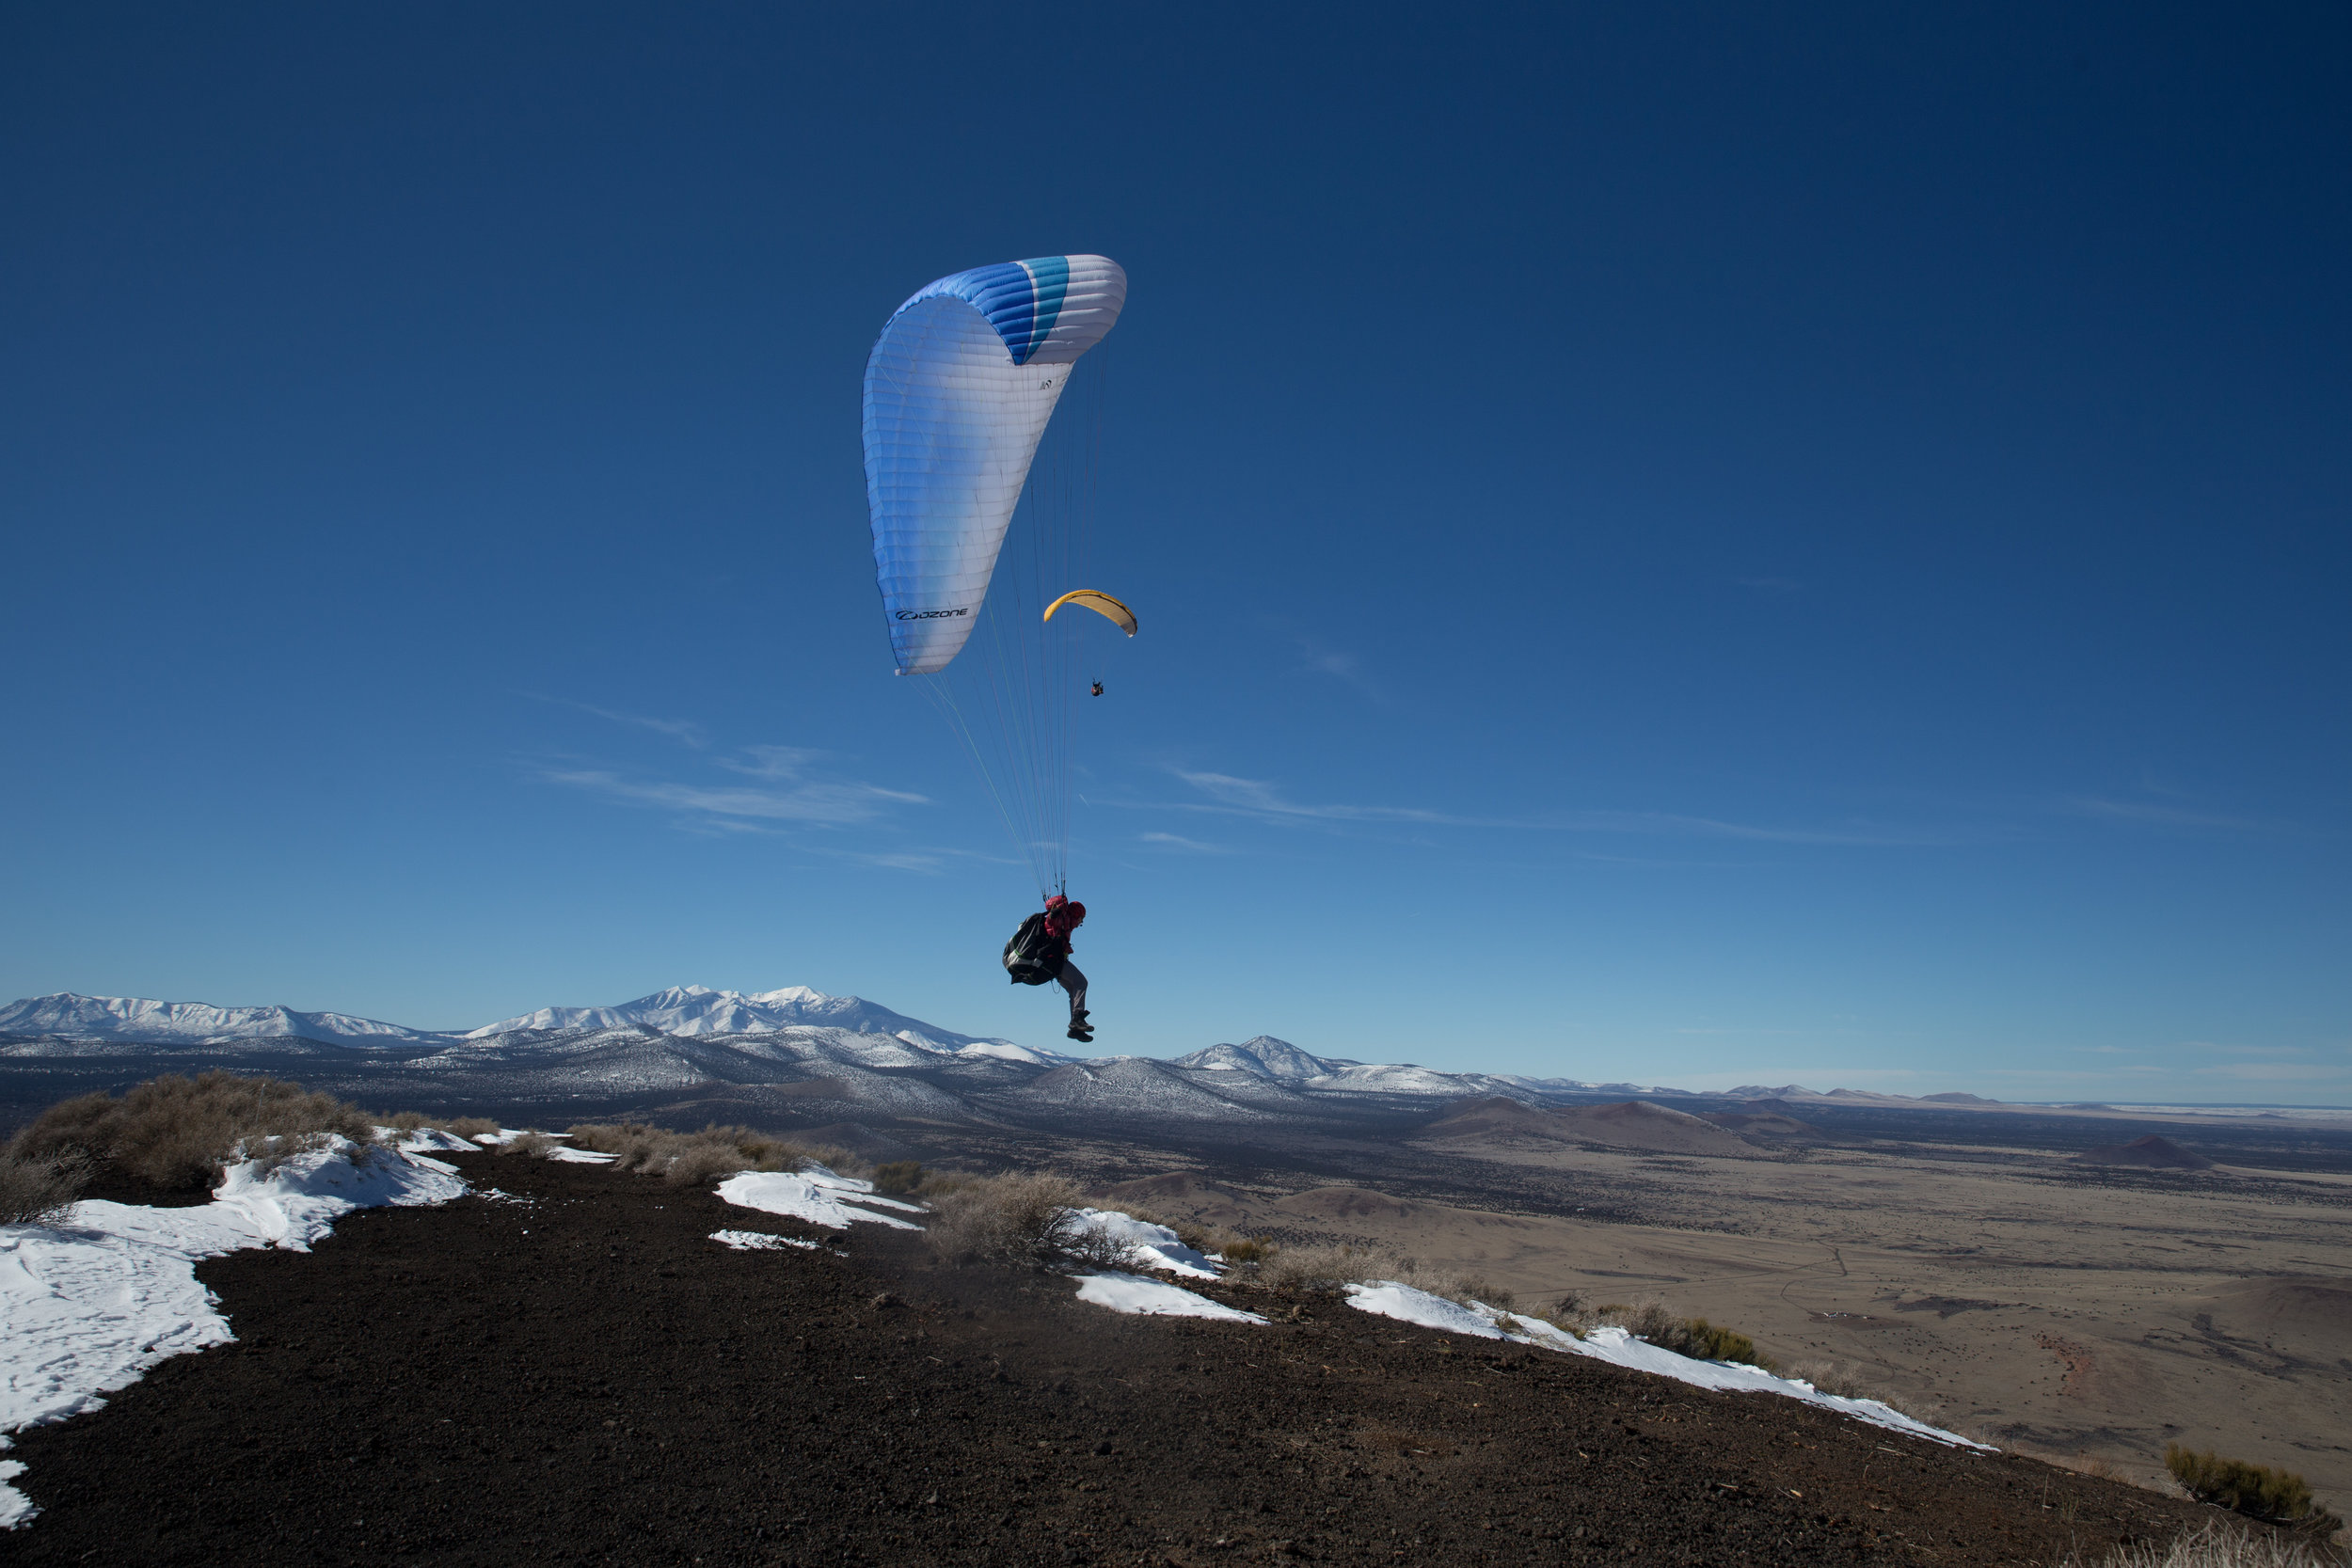 Paragliders find favorable winds atop Merriam Crater. The snow covered peaks sit quietly to the south west.